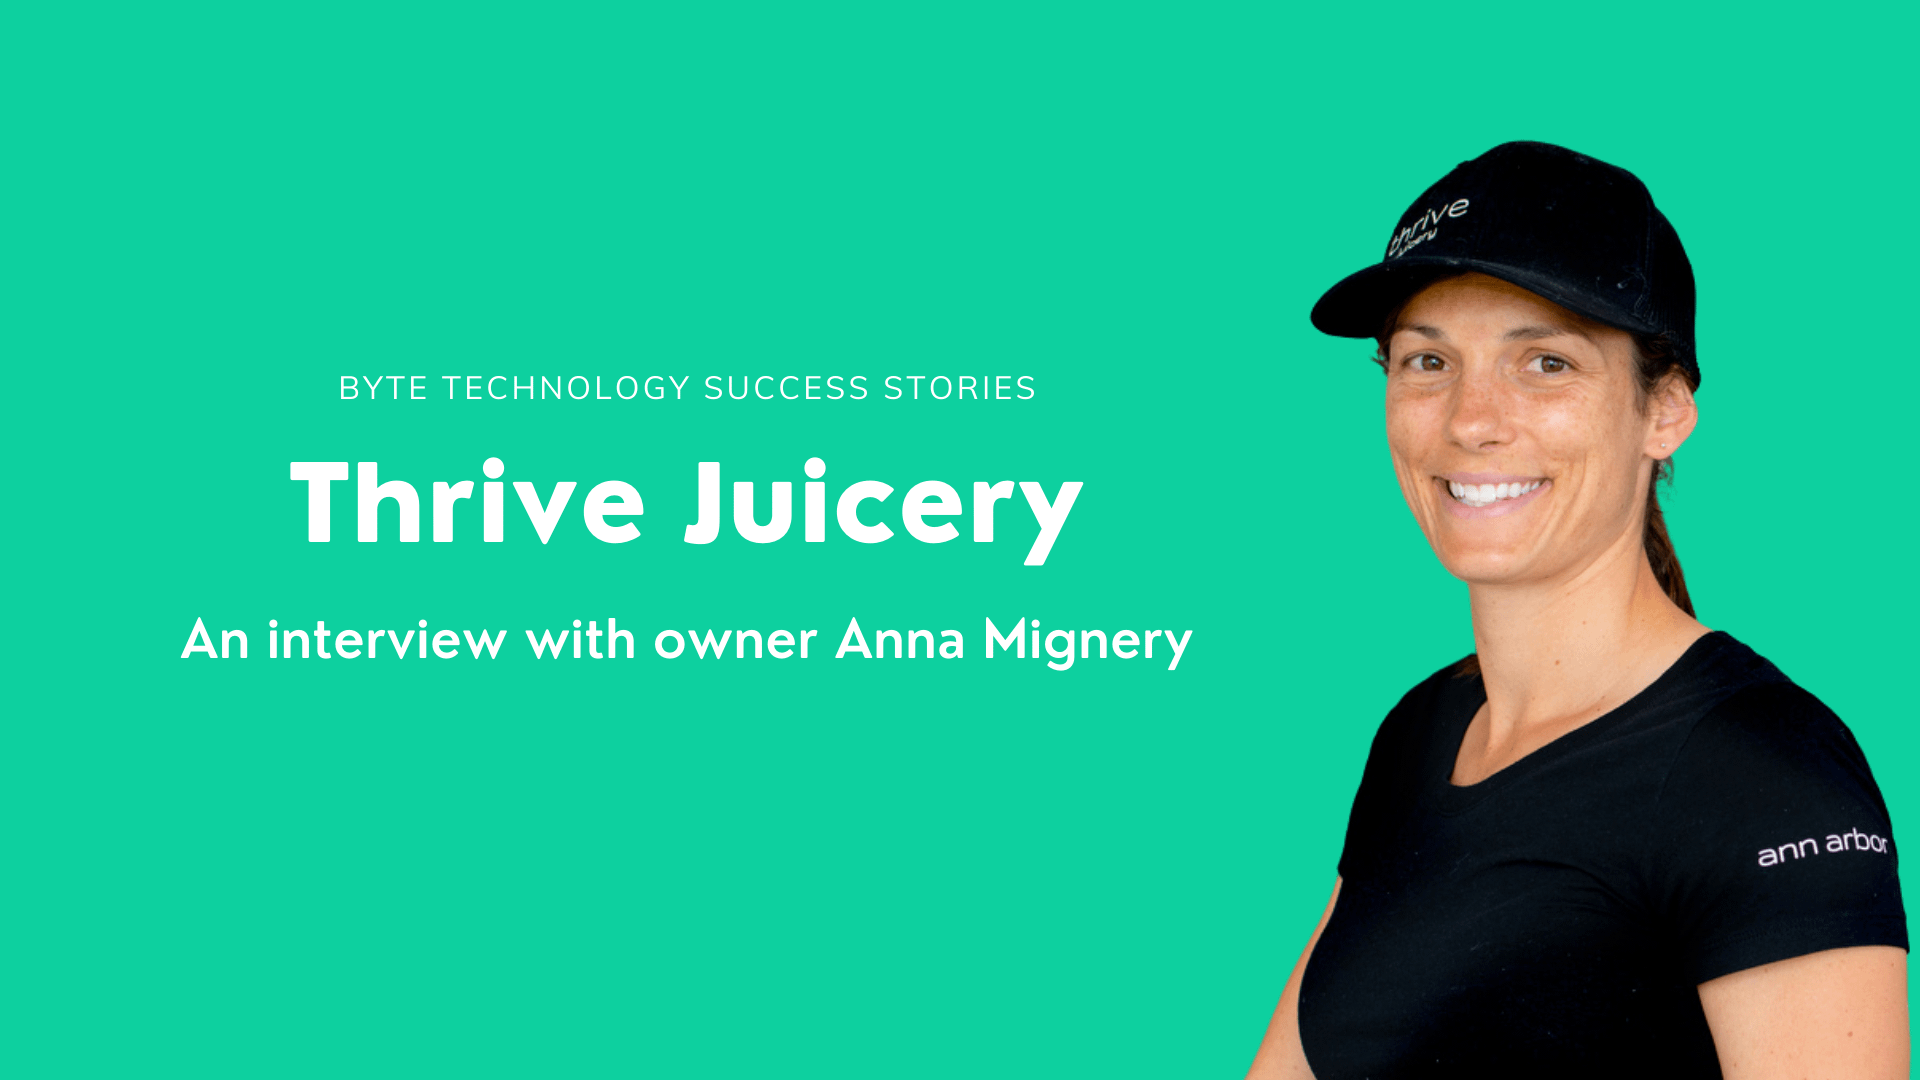 Byte Success Stories: An Interview with Thrive Juicery